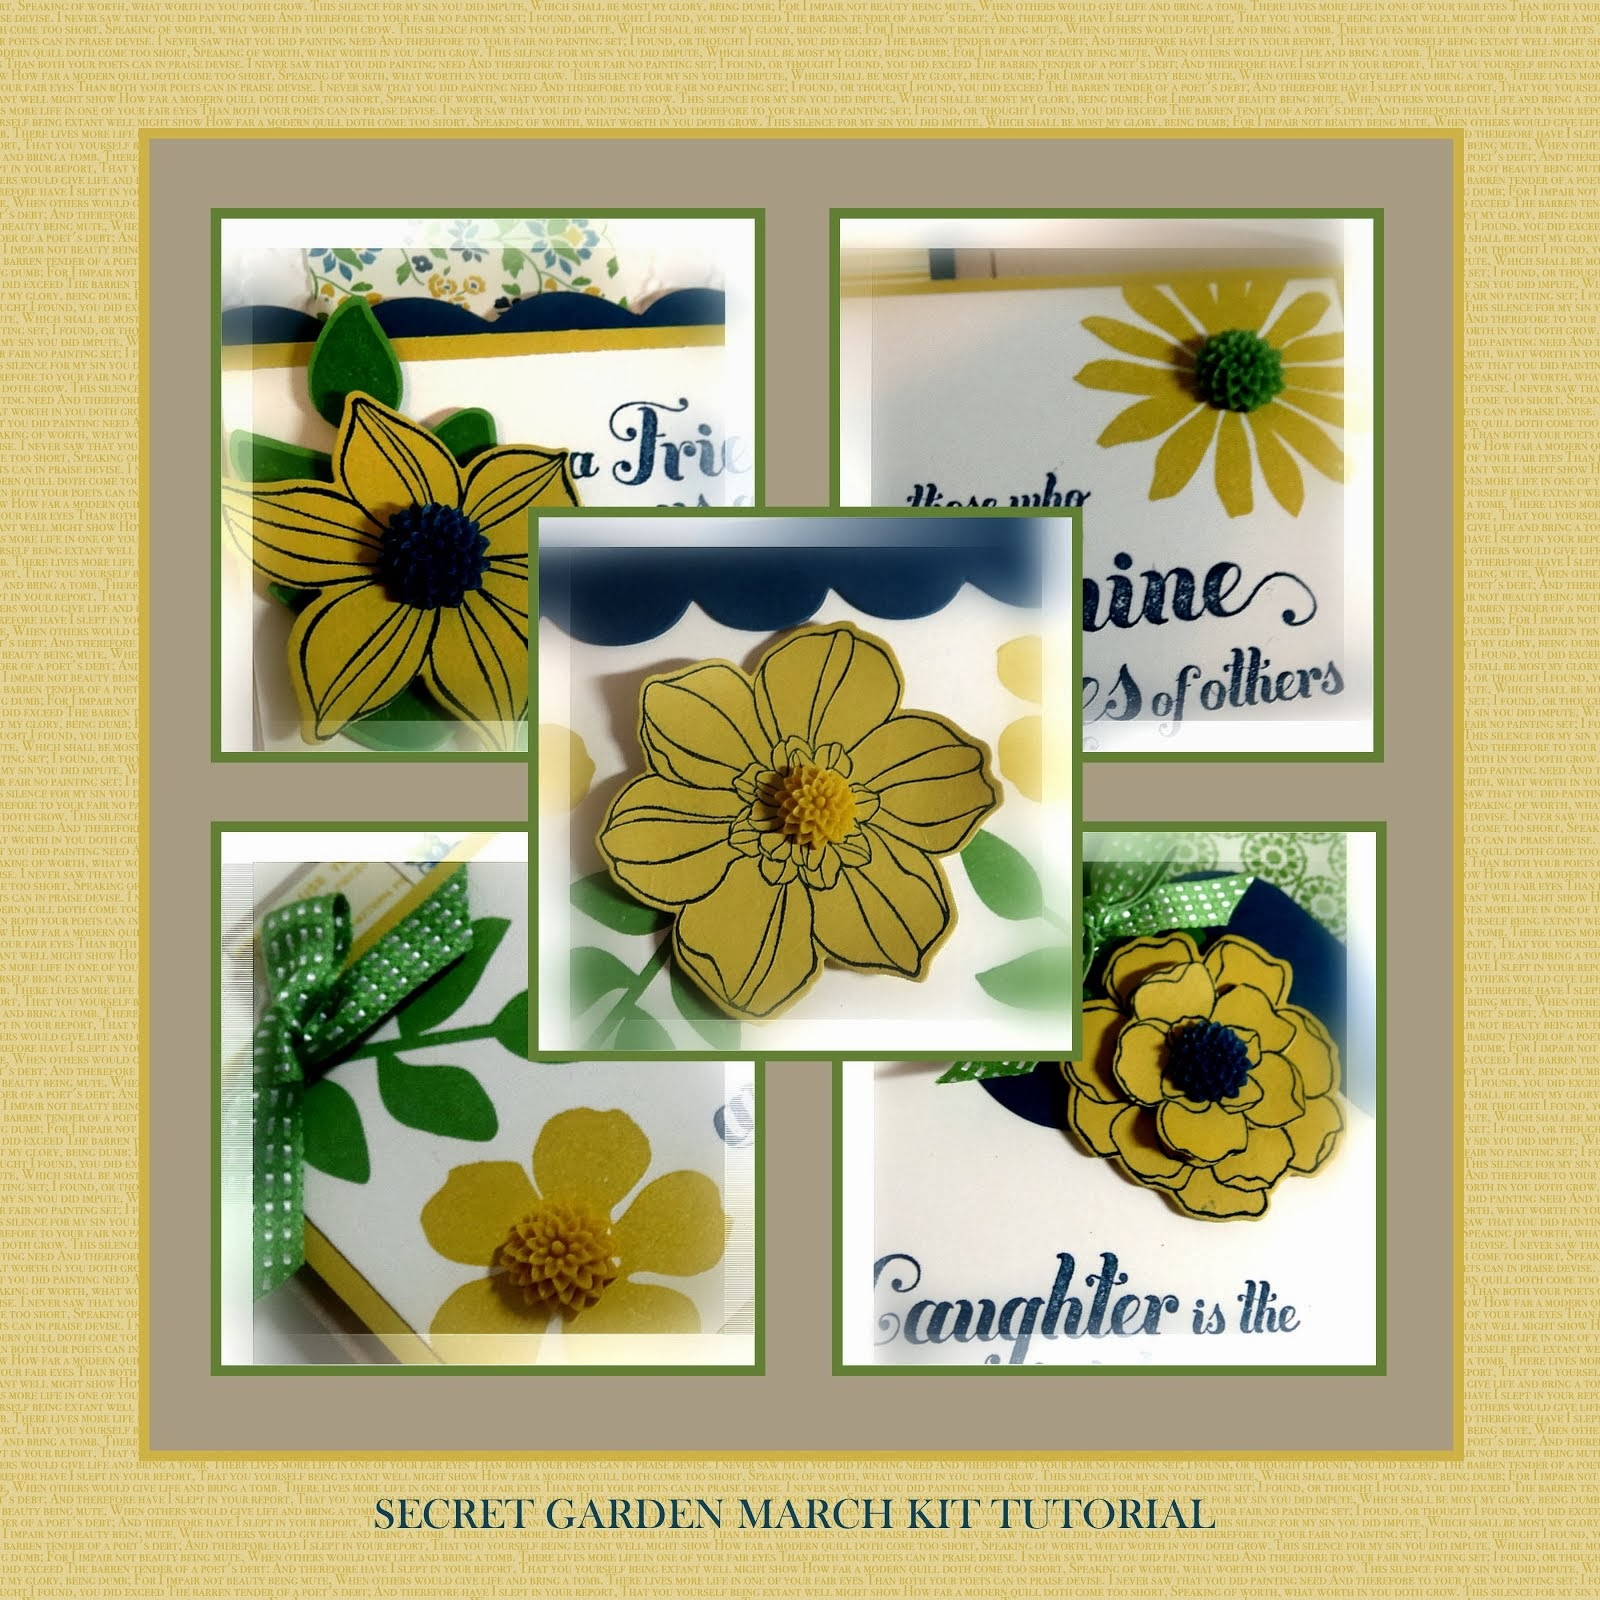 Secret Garden March Kit Tutorial